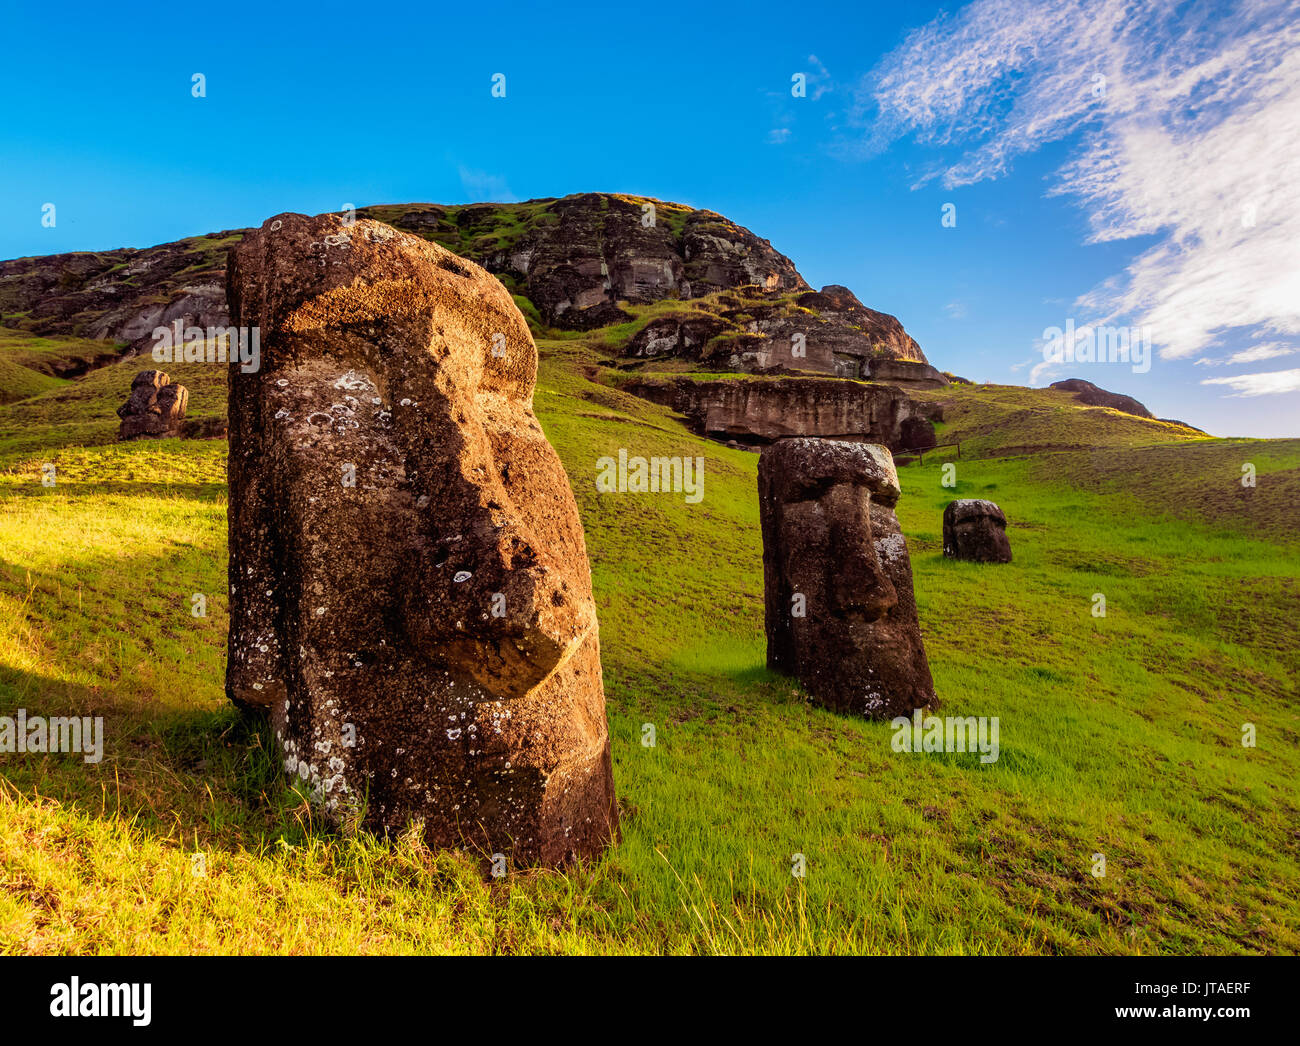 Moais at the quarry on the slope of the Rano Raraku Volcano, Rapa Nui National Park, UNESCO, Easter Island, Chile - Stock Image